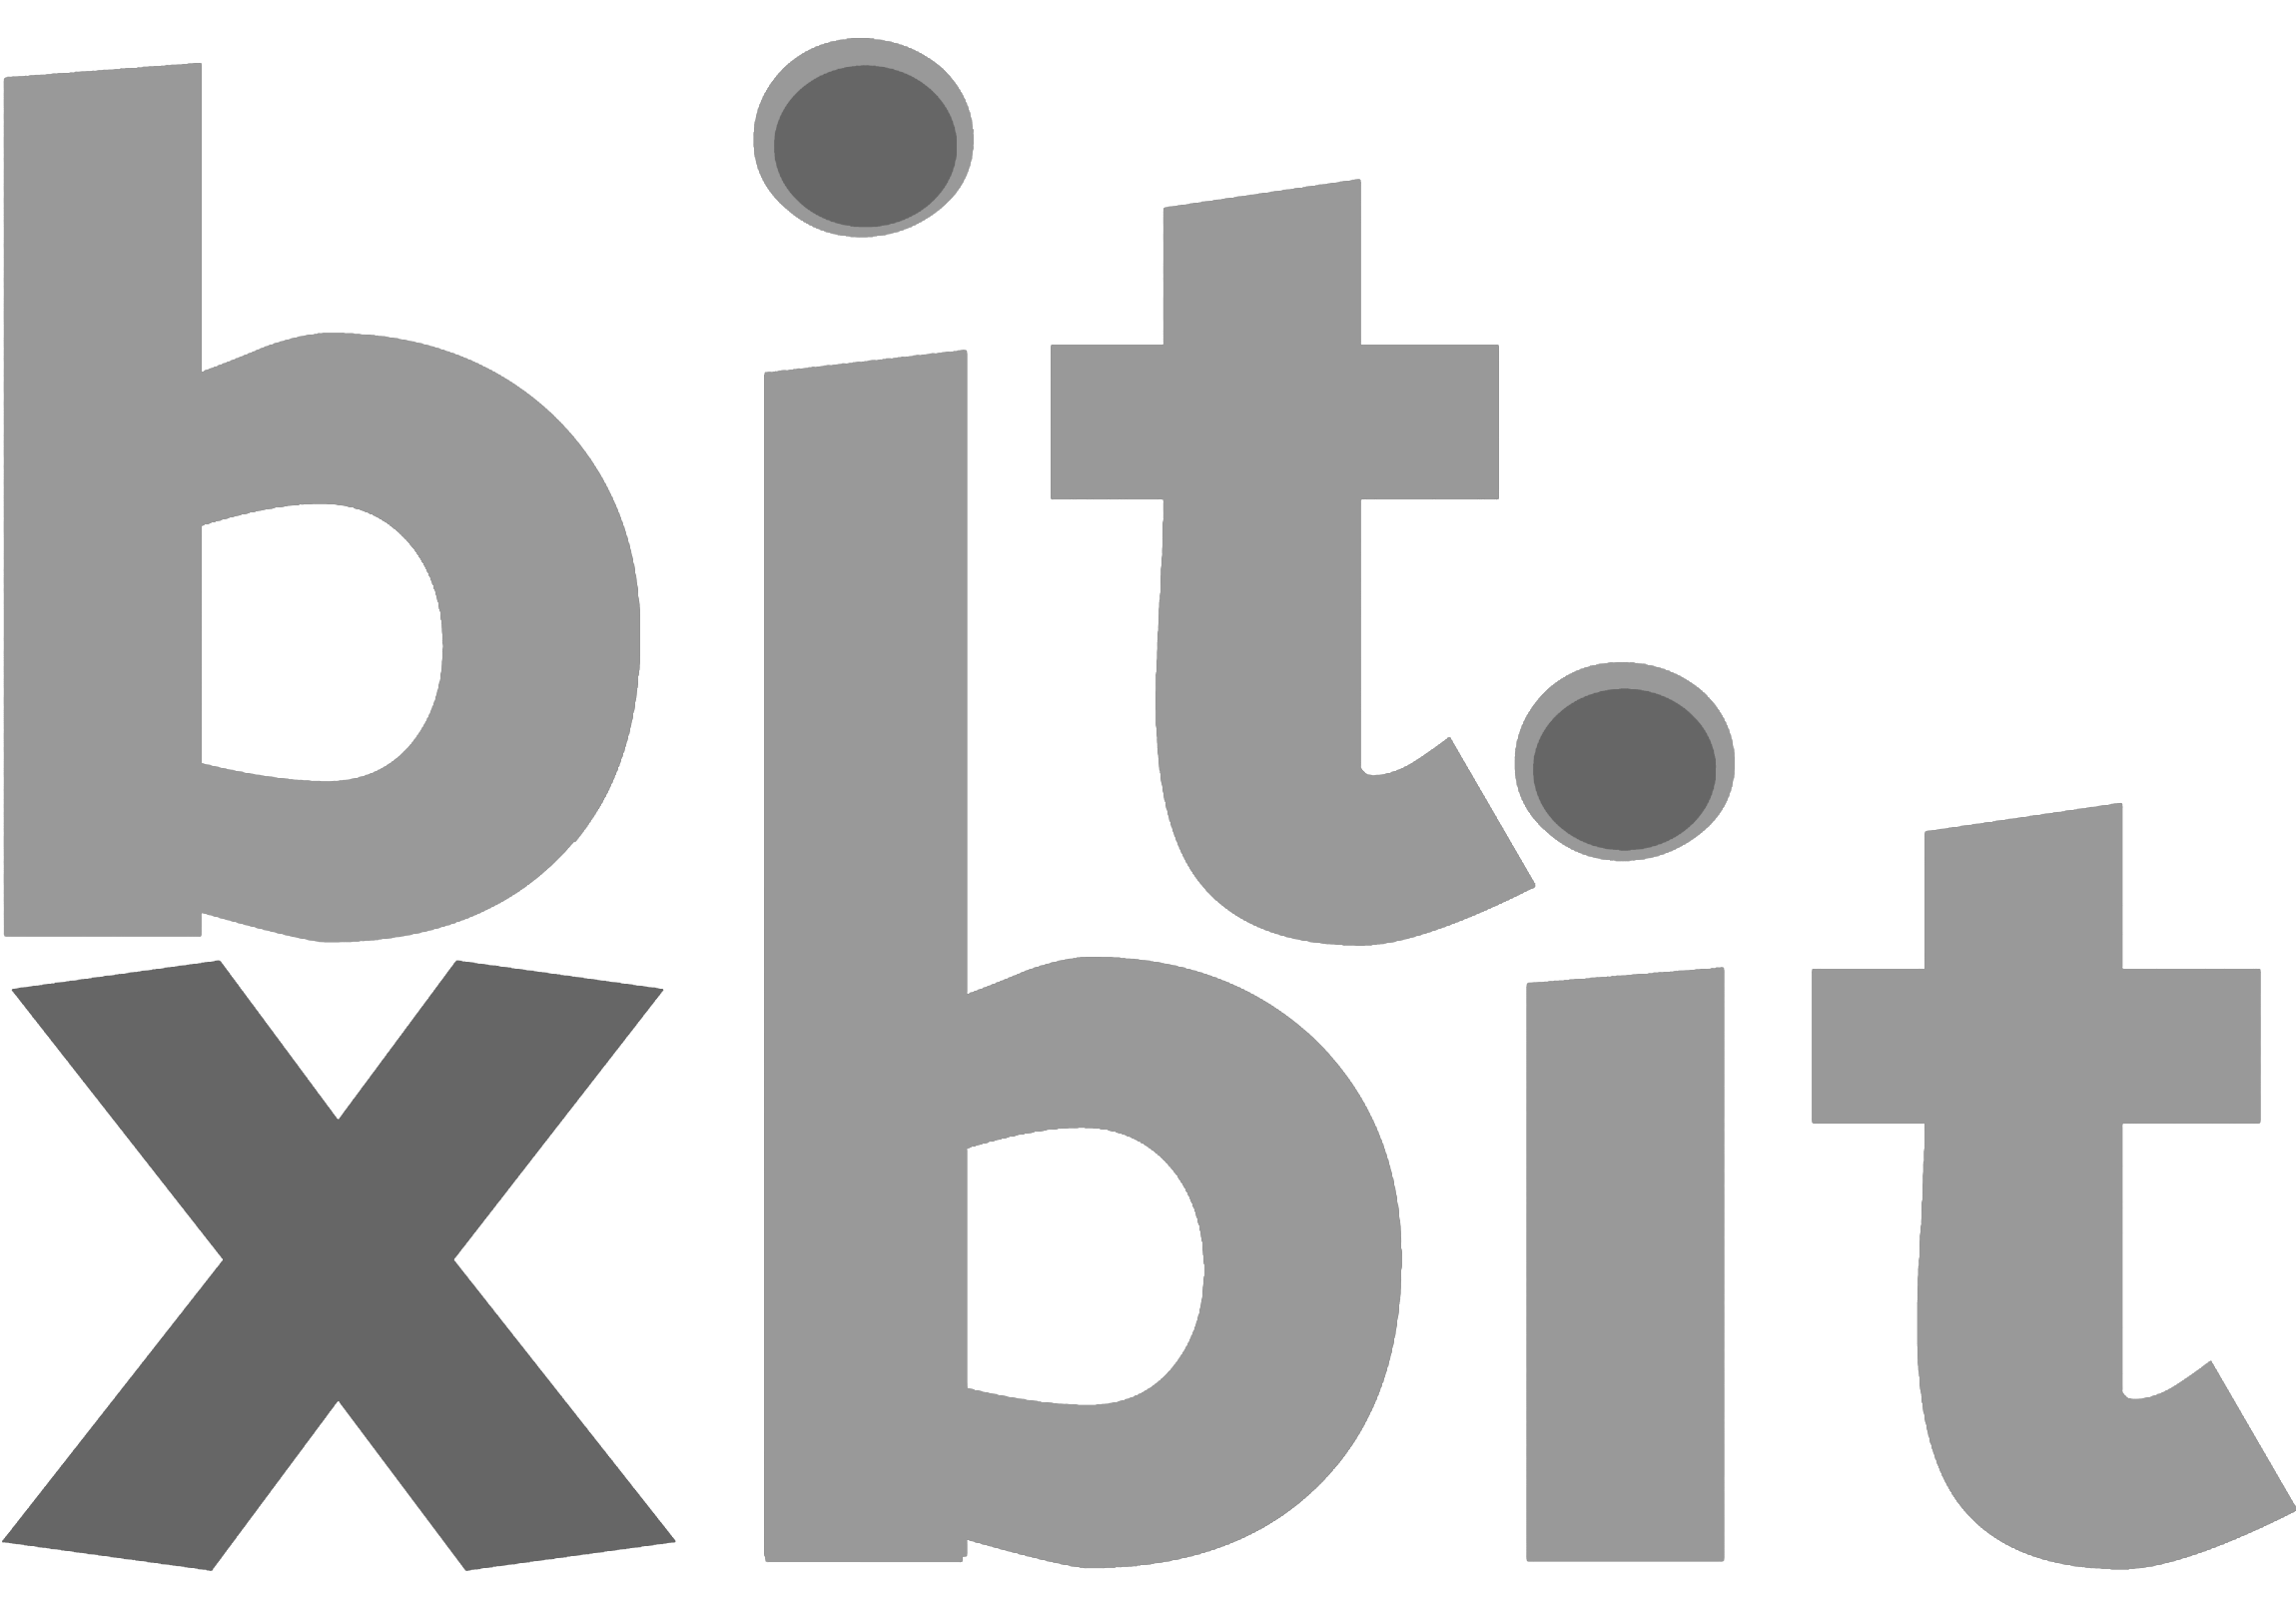 bitxbit consulting